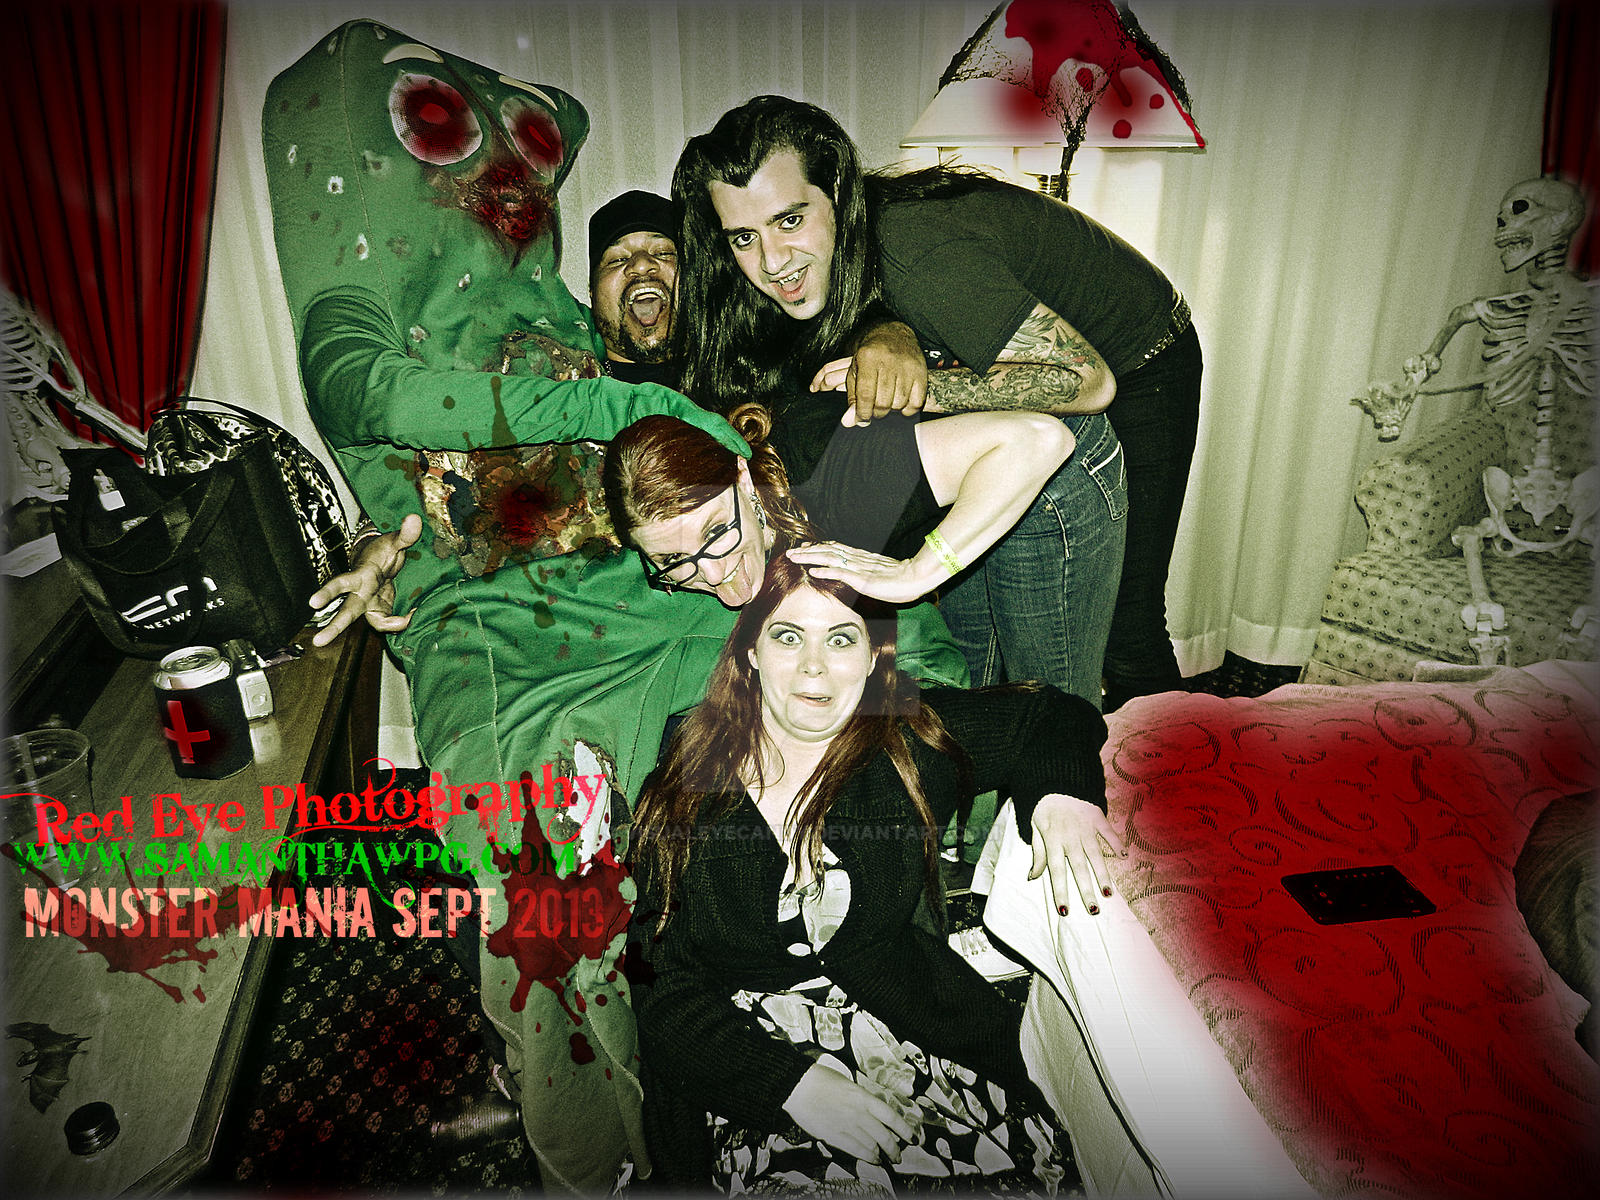 Monster Mania Sept 2013 Room 1130 at 11:30 by VisualEyeCandy